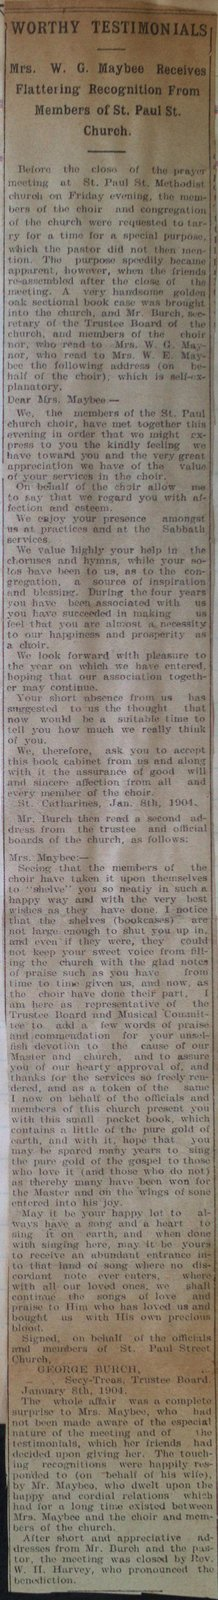 Teresa Vanderburgh's Musical Scrapbook #2 - A Newspaper Clipping Describing the Recognition of Mrs. Maybee